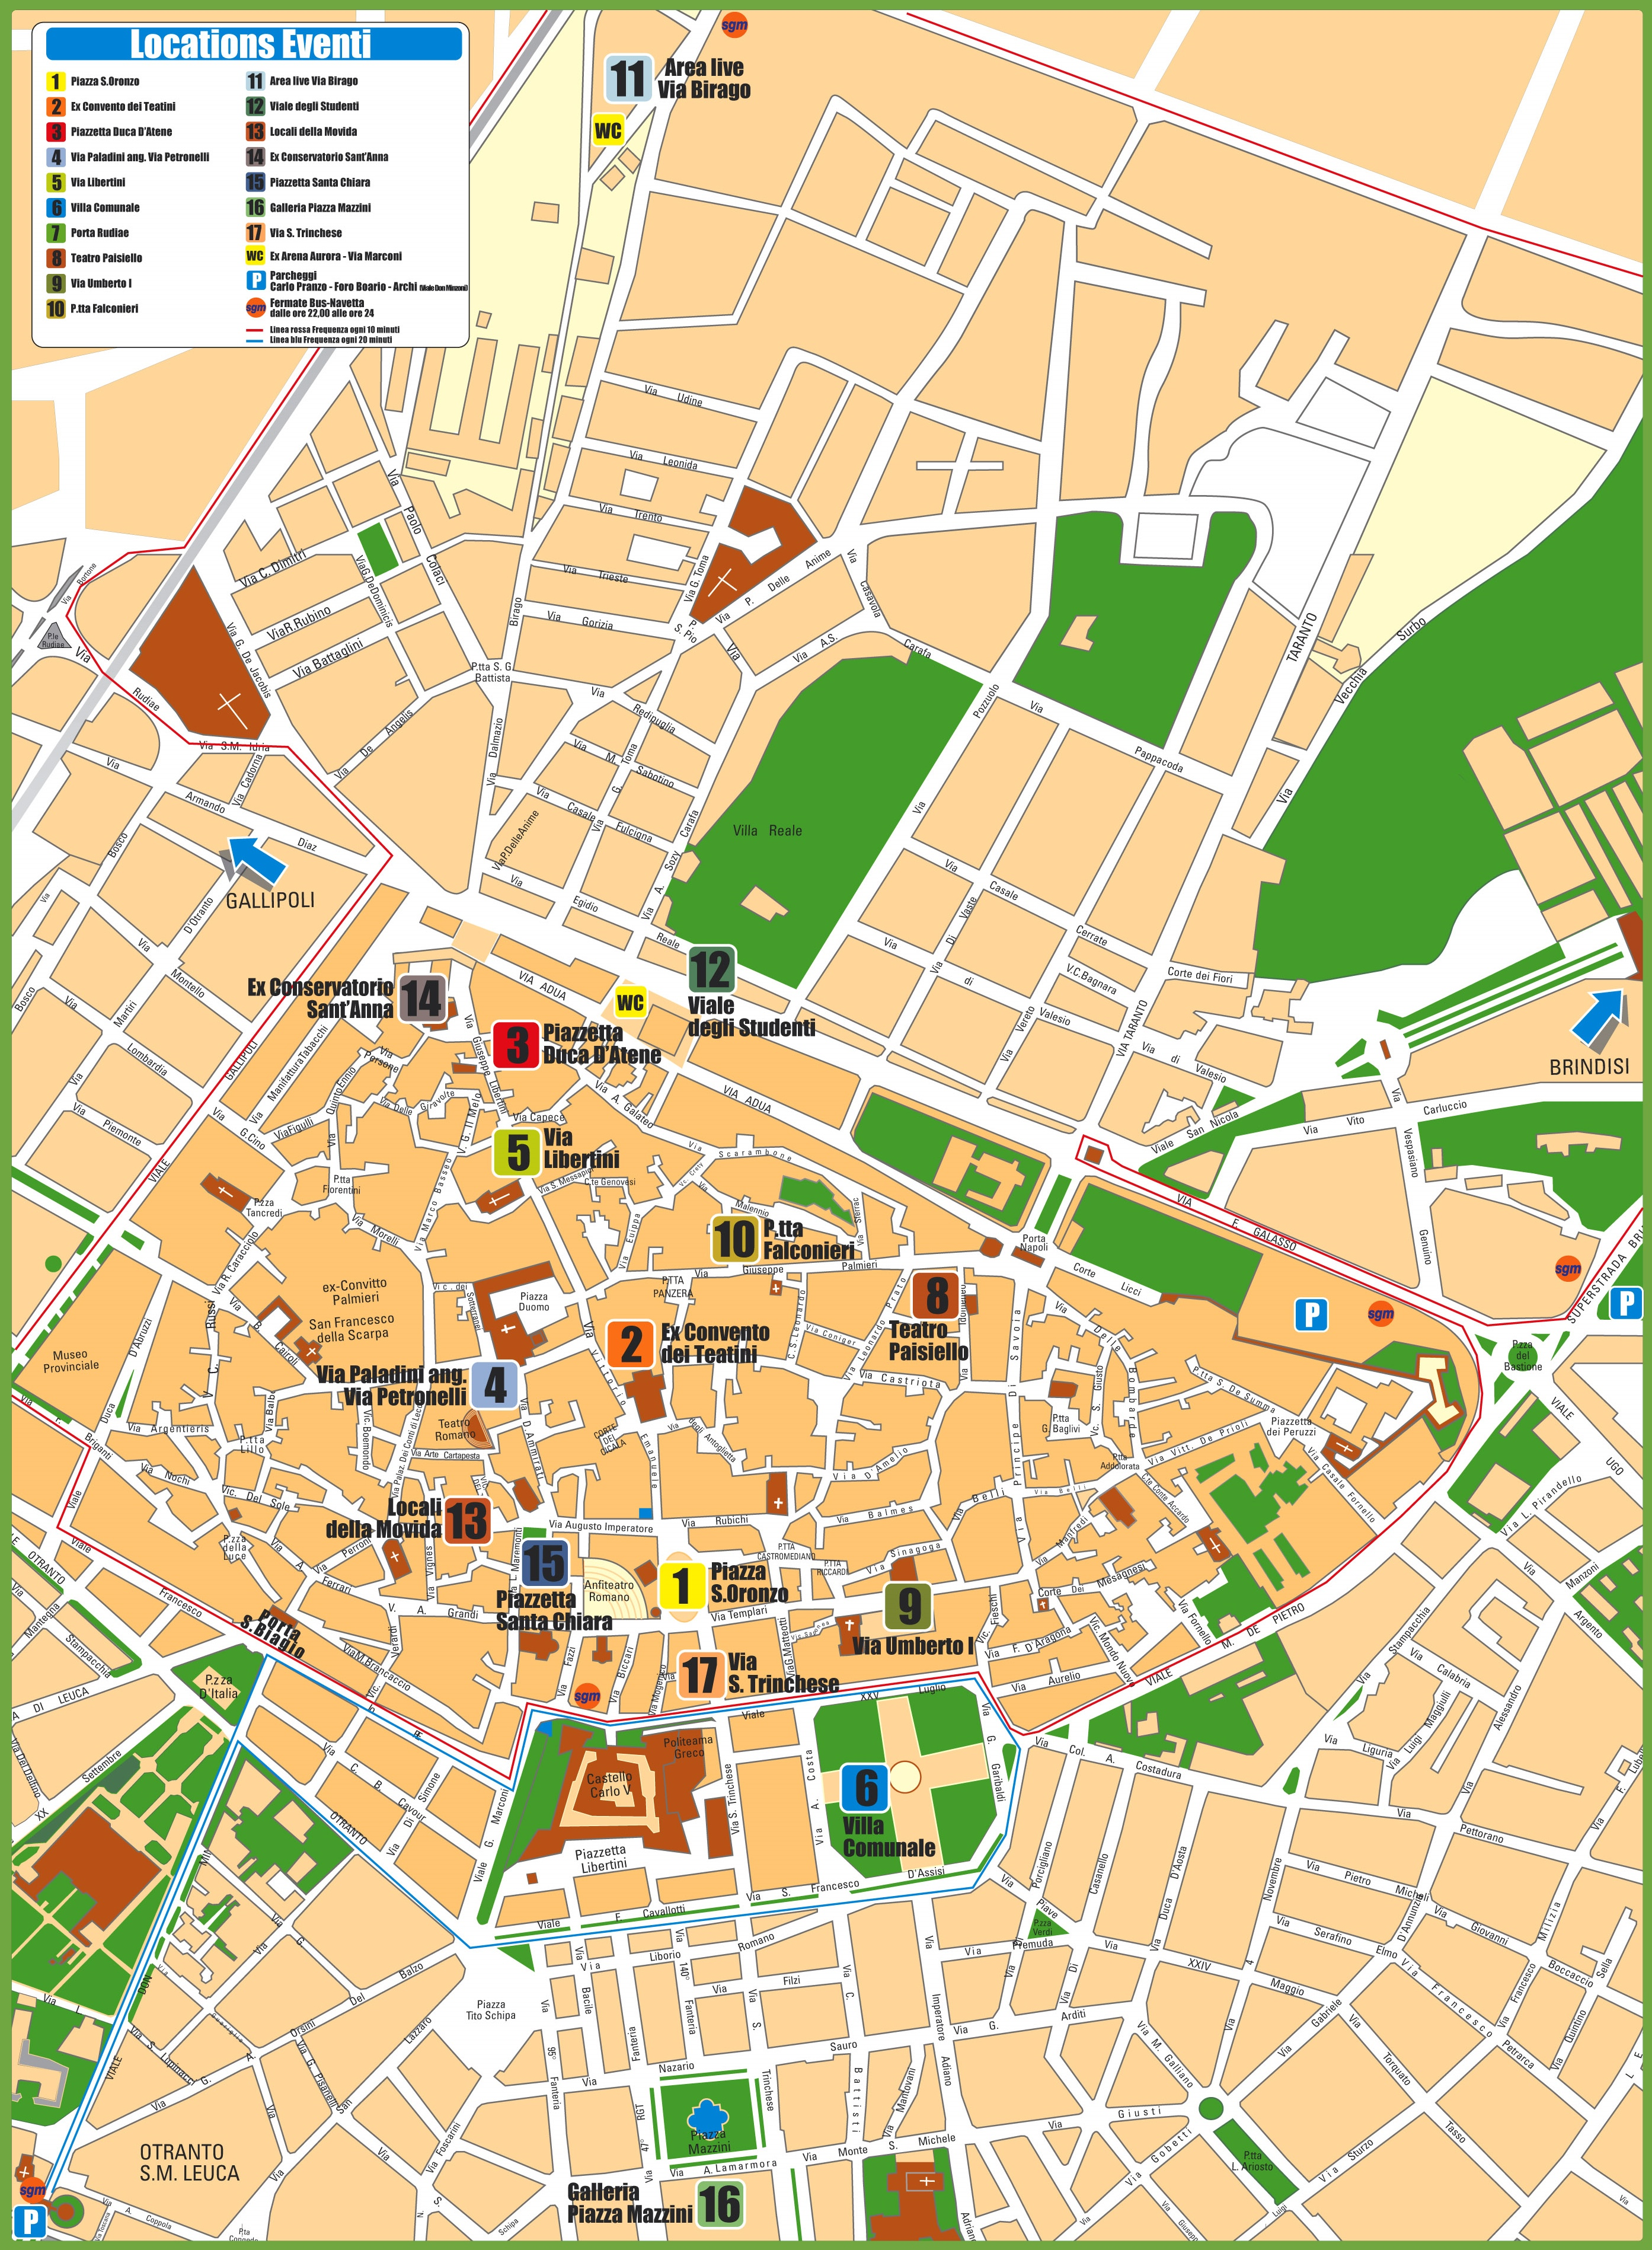 Lecce tourist attractions map